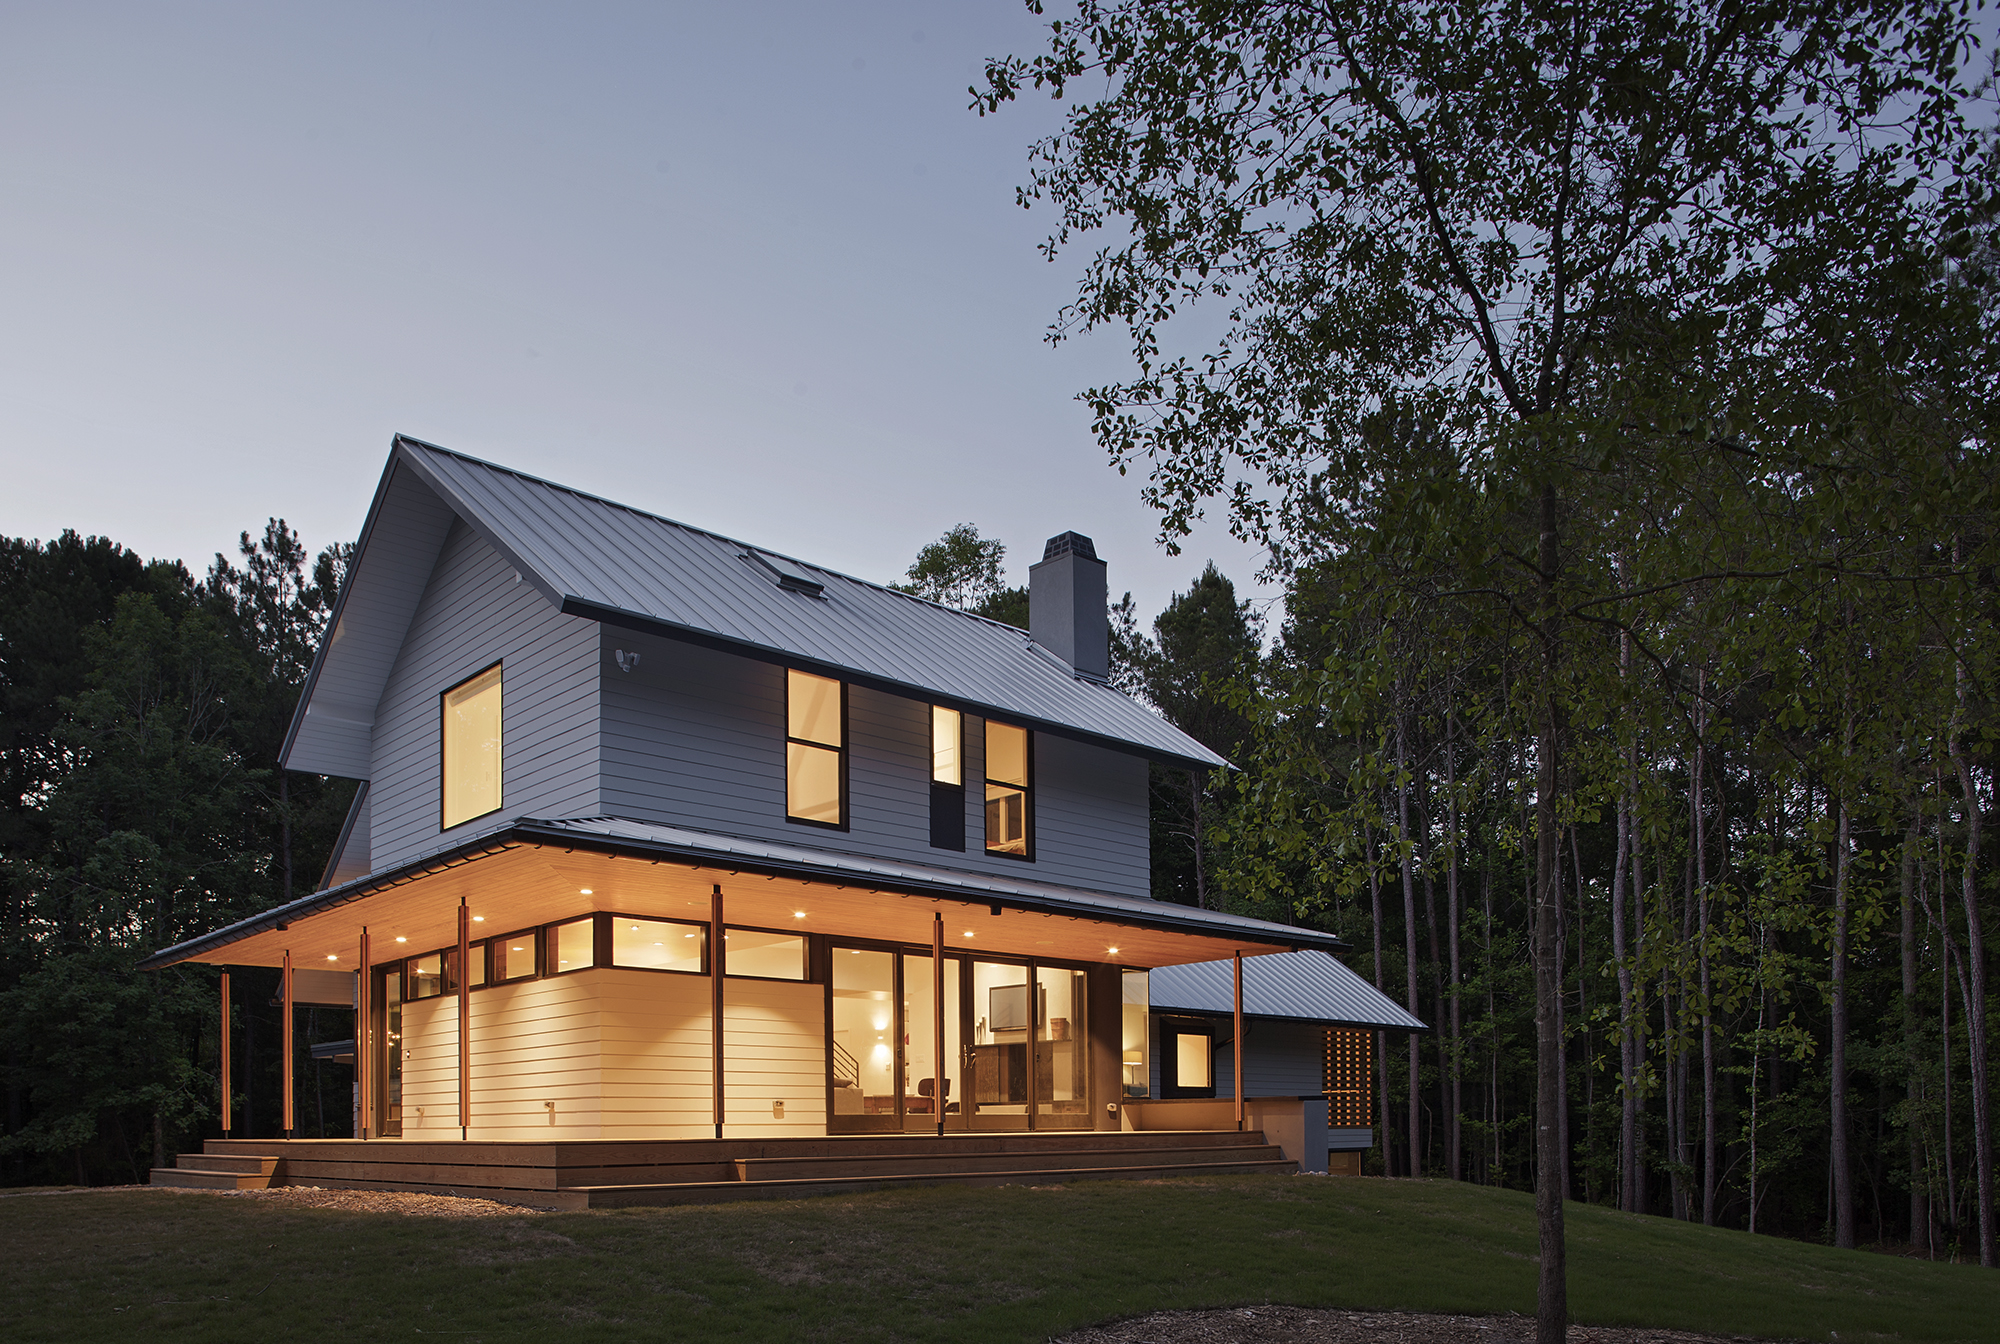 HardiePlank Lap Siding on modern-rustic North Carolina home.